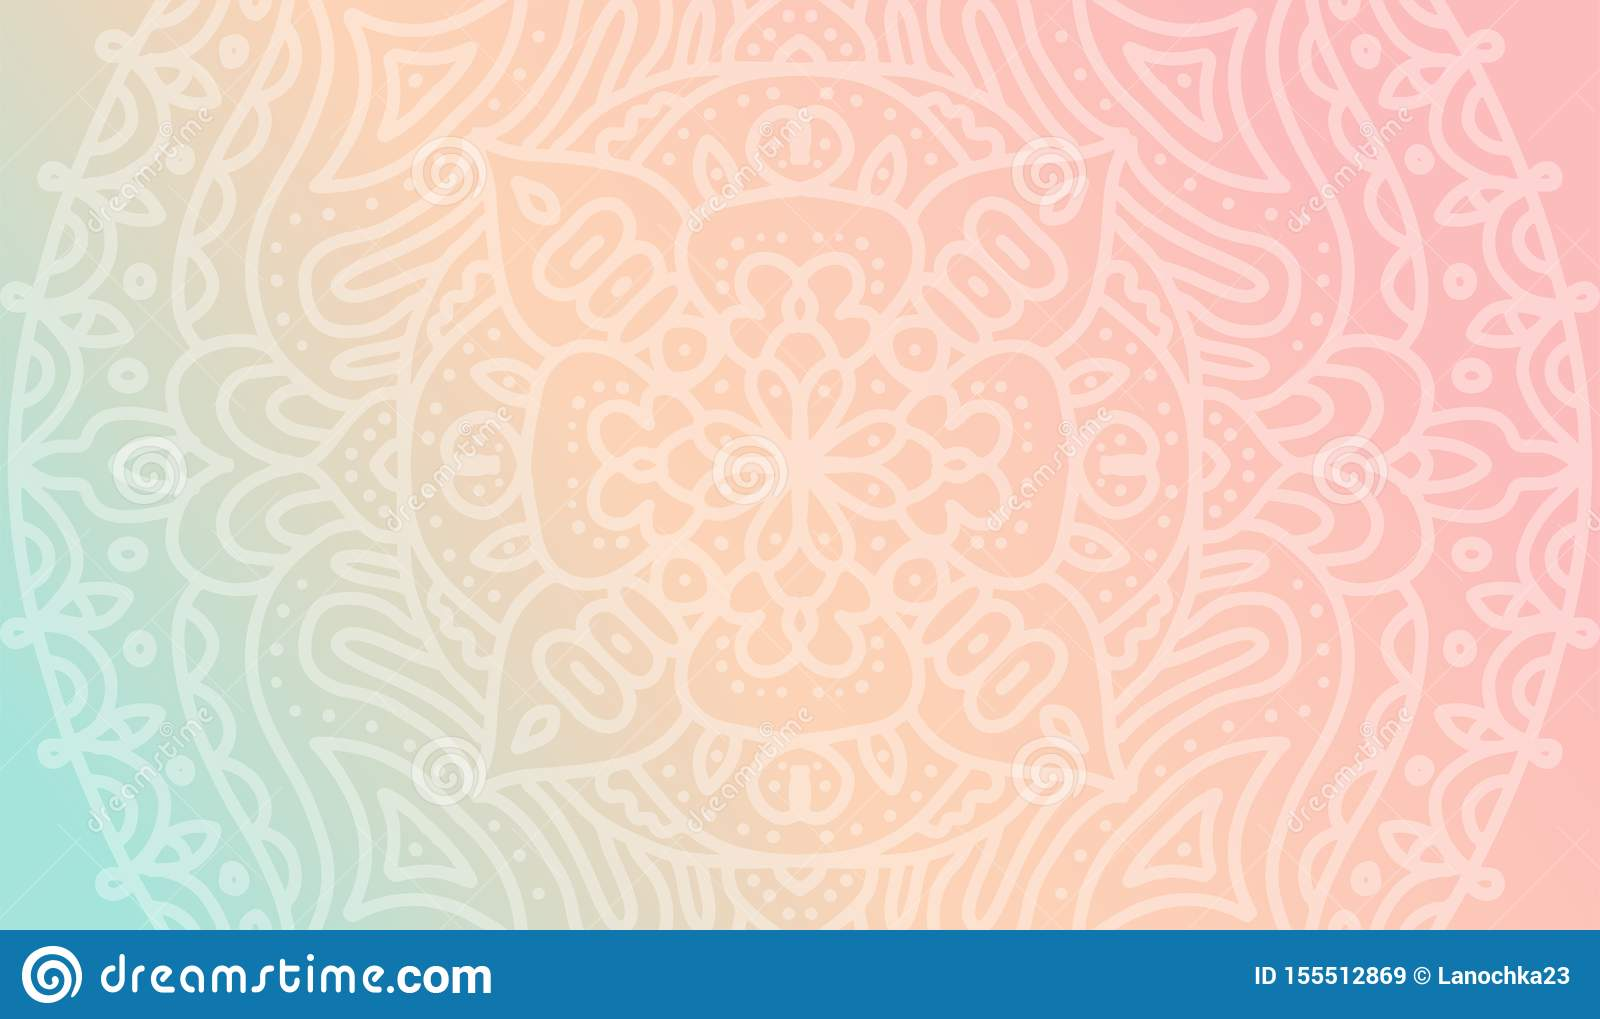 Dreamy Tender Gradient Wallpaper With Mandala Pattern Vector Horizontal Background For Meditation Poster Banner For Yoga School Stock Illustration Illustration Of Mandala Intricate 155512869